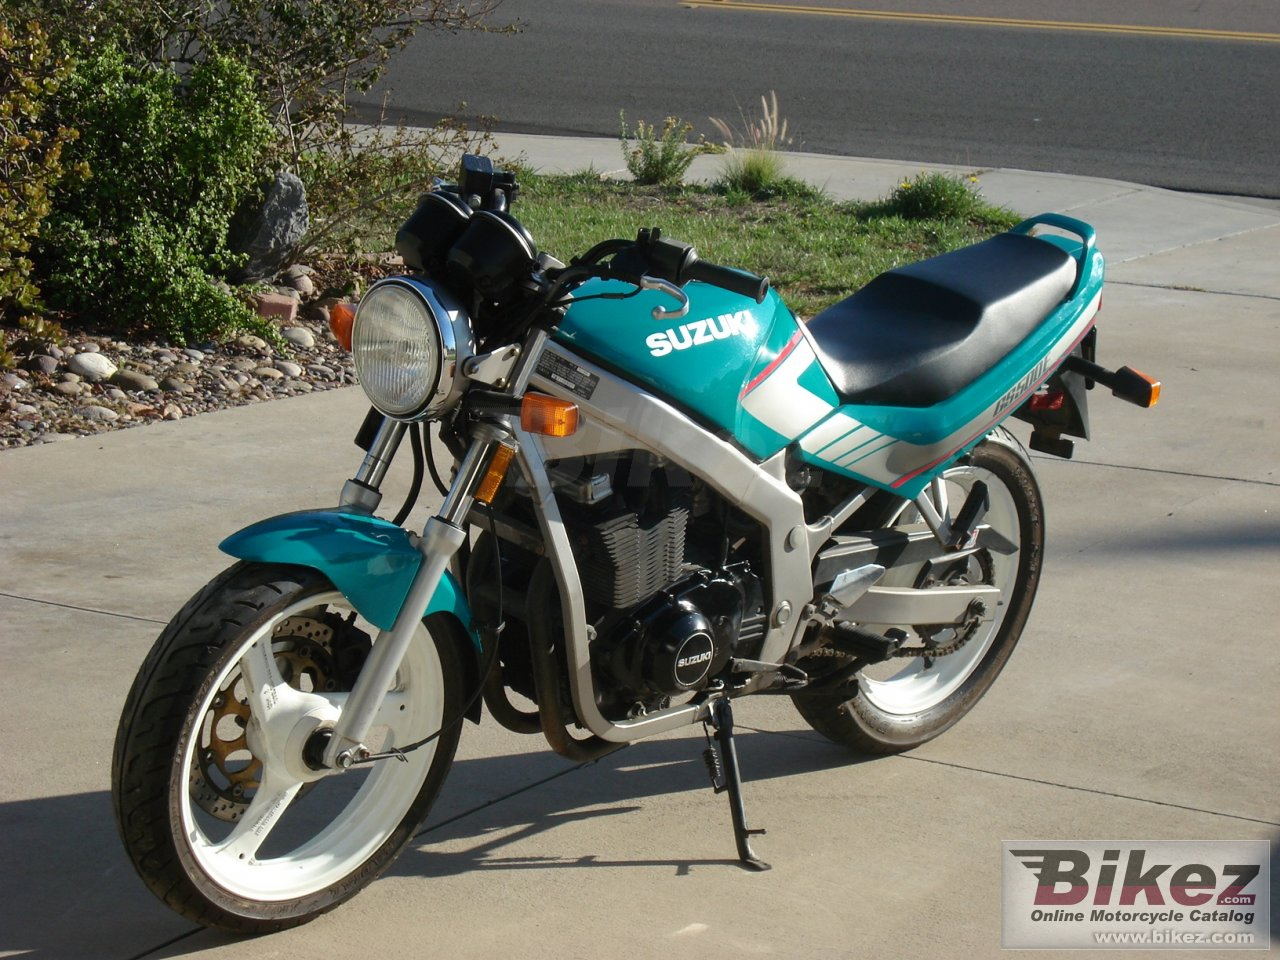 Suzuki GSX 600 F (reduced effect)